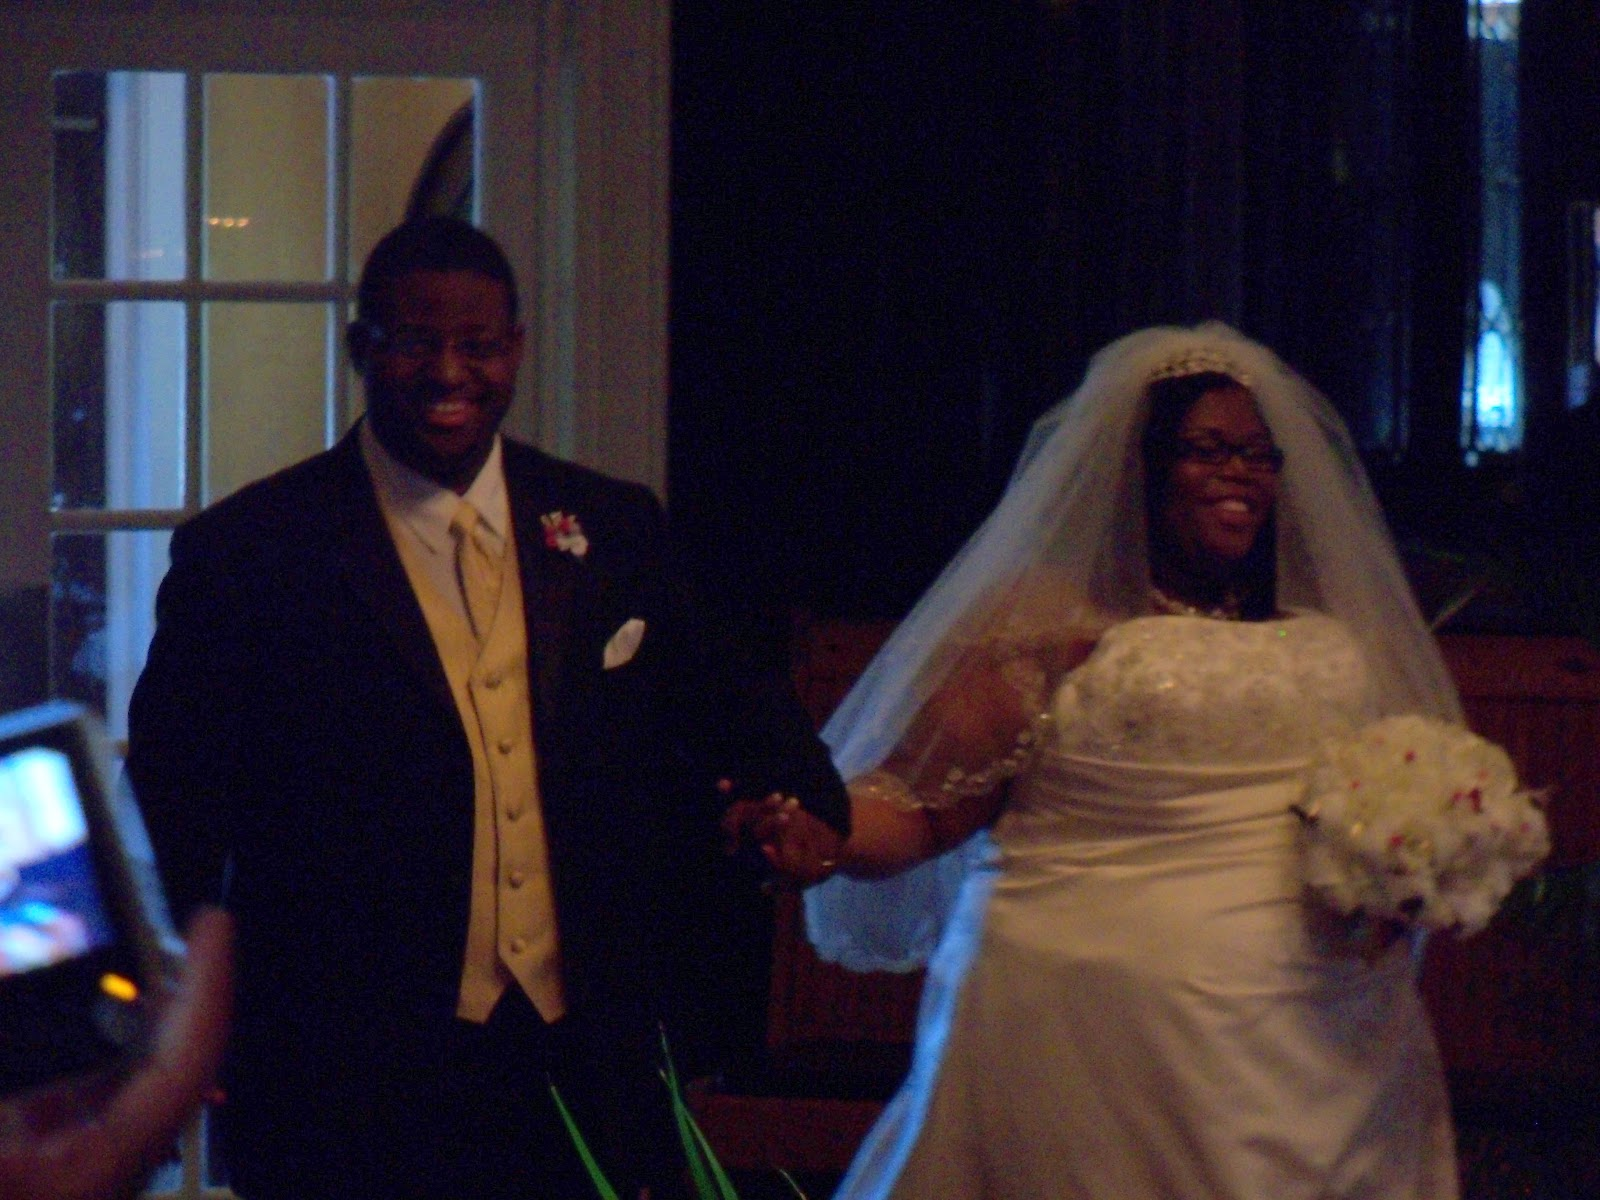 MeChaia Lunn and Clyde Longs wedding - 101_4602.JPG